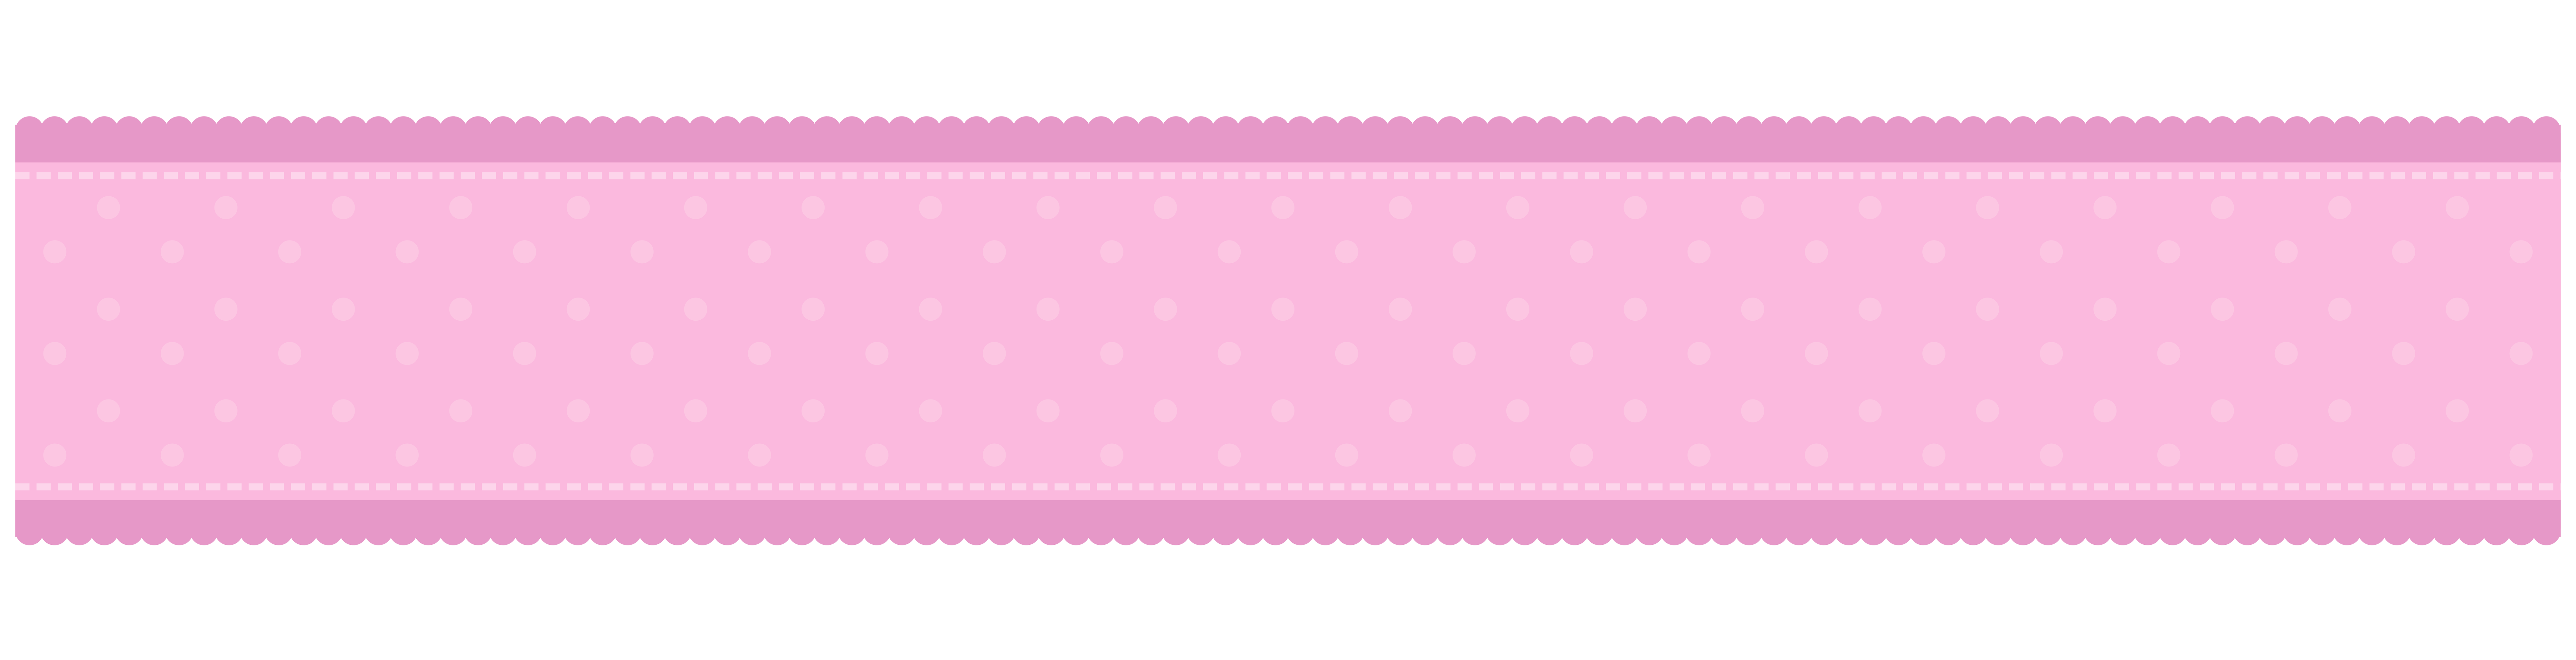 Pink border png. Decorative with hearts clip